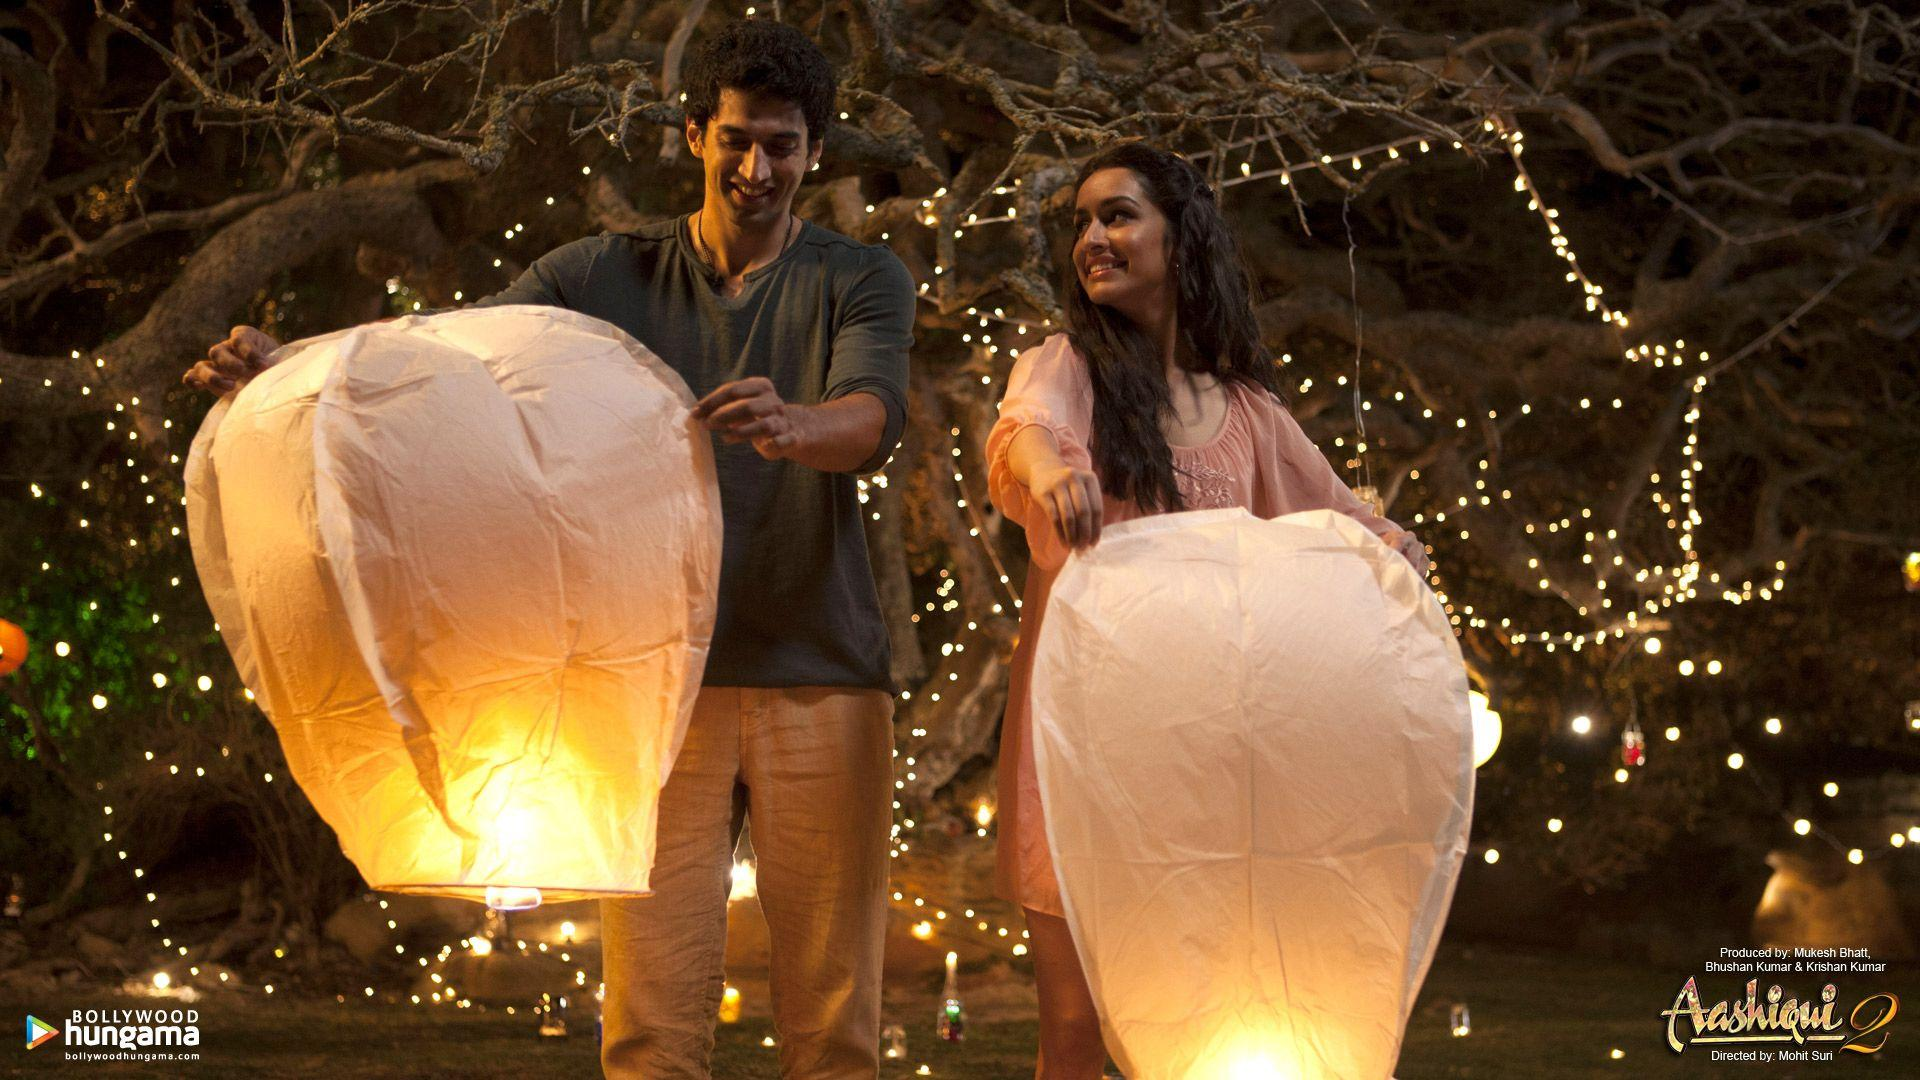 dbad2f9ab Aashiqui 2 Wallpapers HD 1080p - Wallpaper Cave